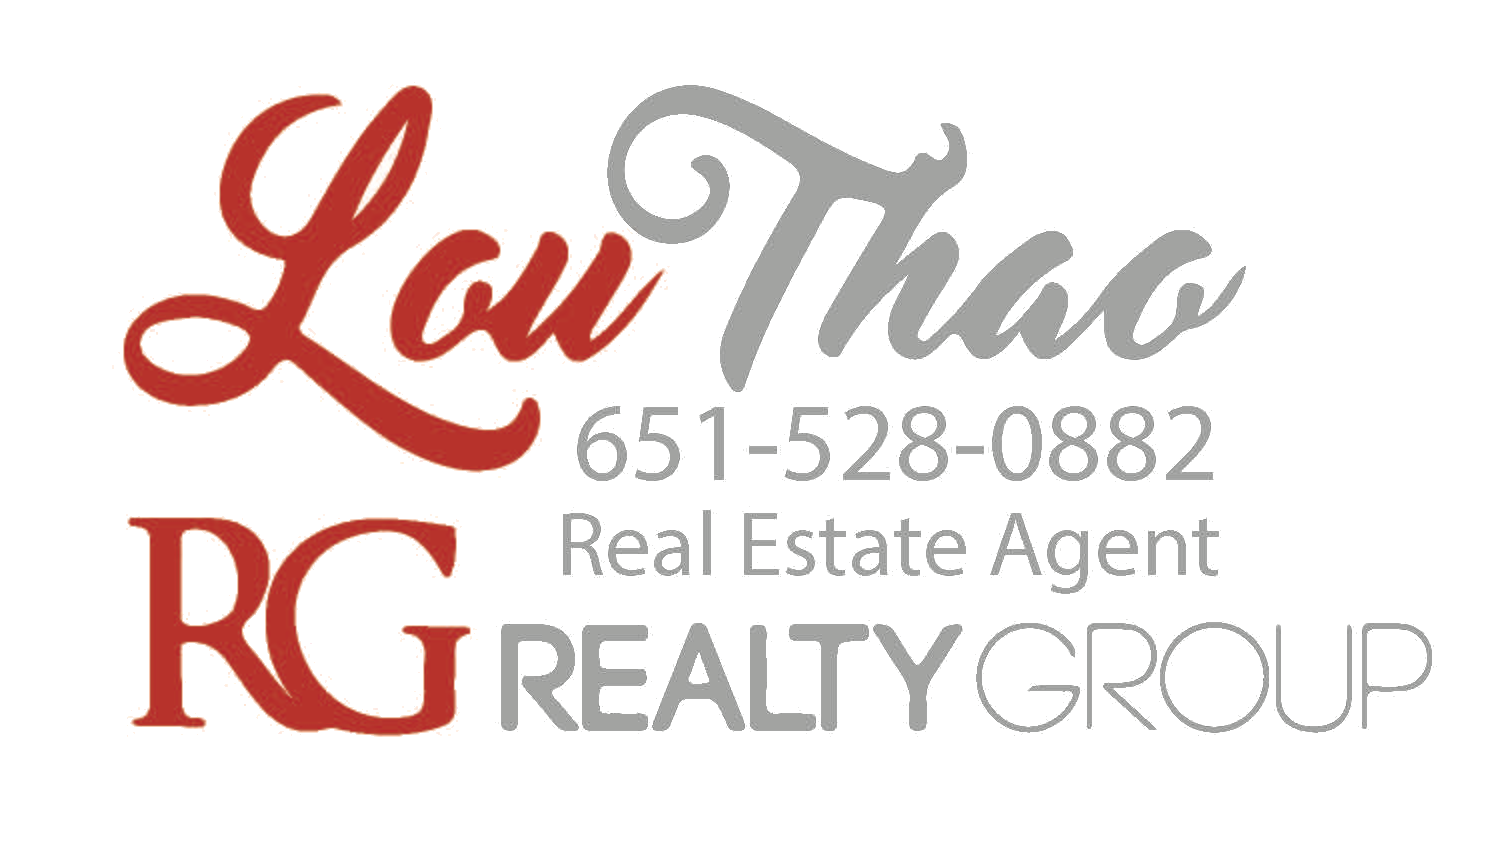 https://realtygroupmn.com/coon-rapids-team/lou-thao-licensed-real-estate-agent